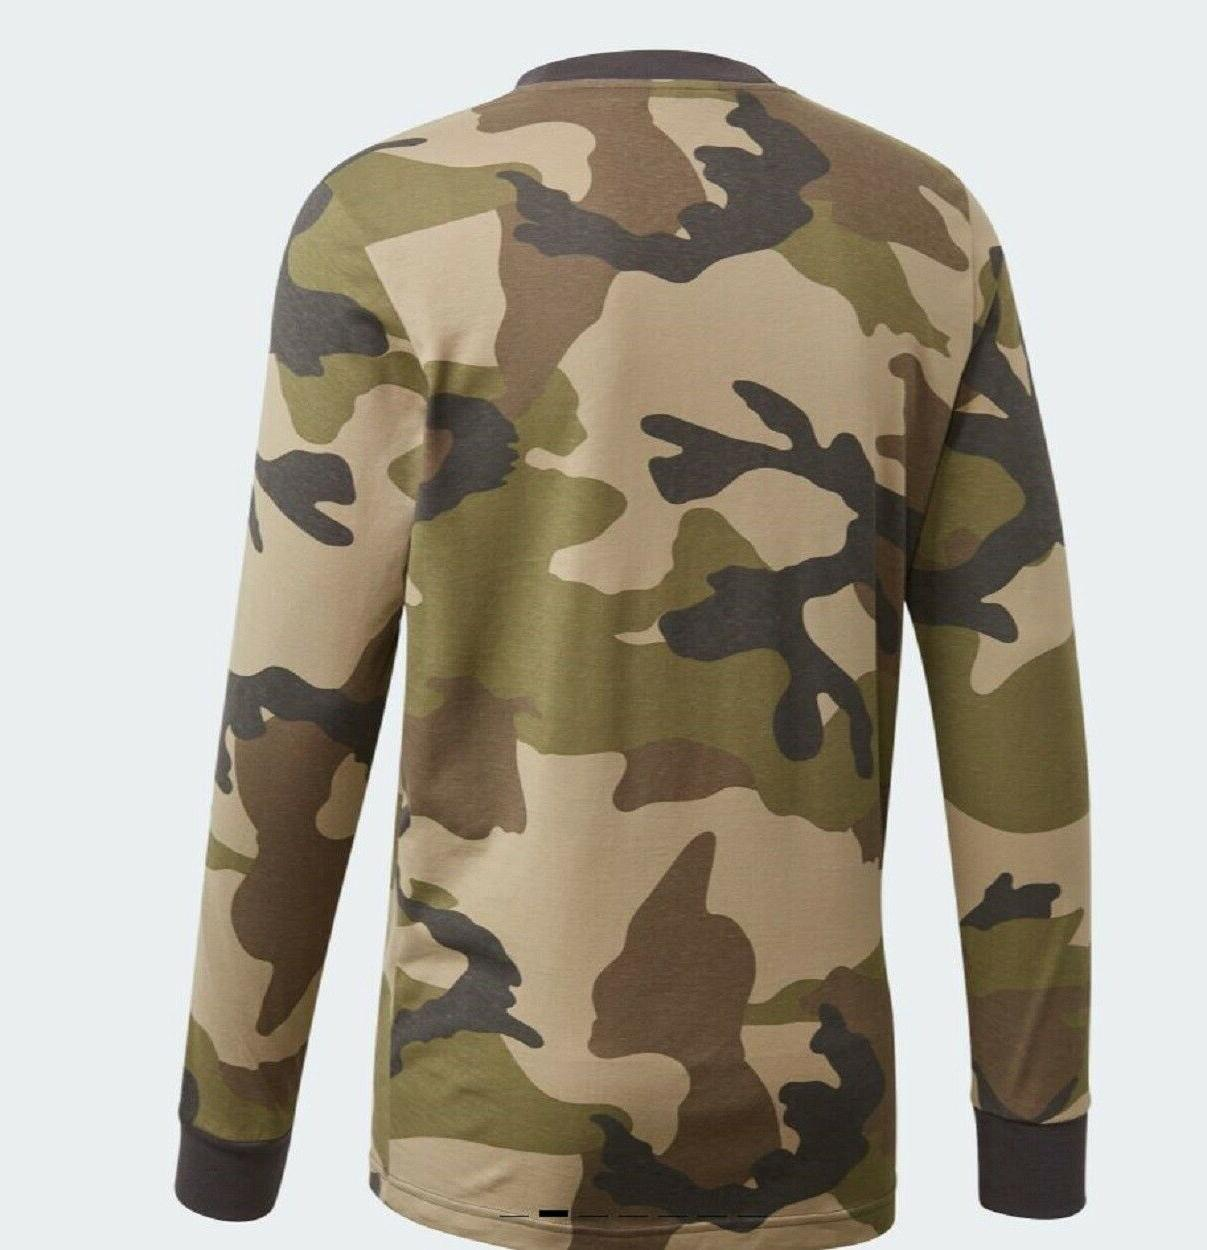 NEW ADIDAS ORIGINALS CAMO TREFOIL LONG TEE SHIRT ~ MEDIUM #DV2055